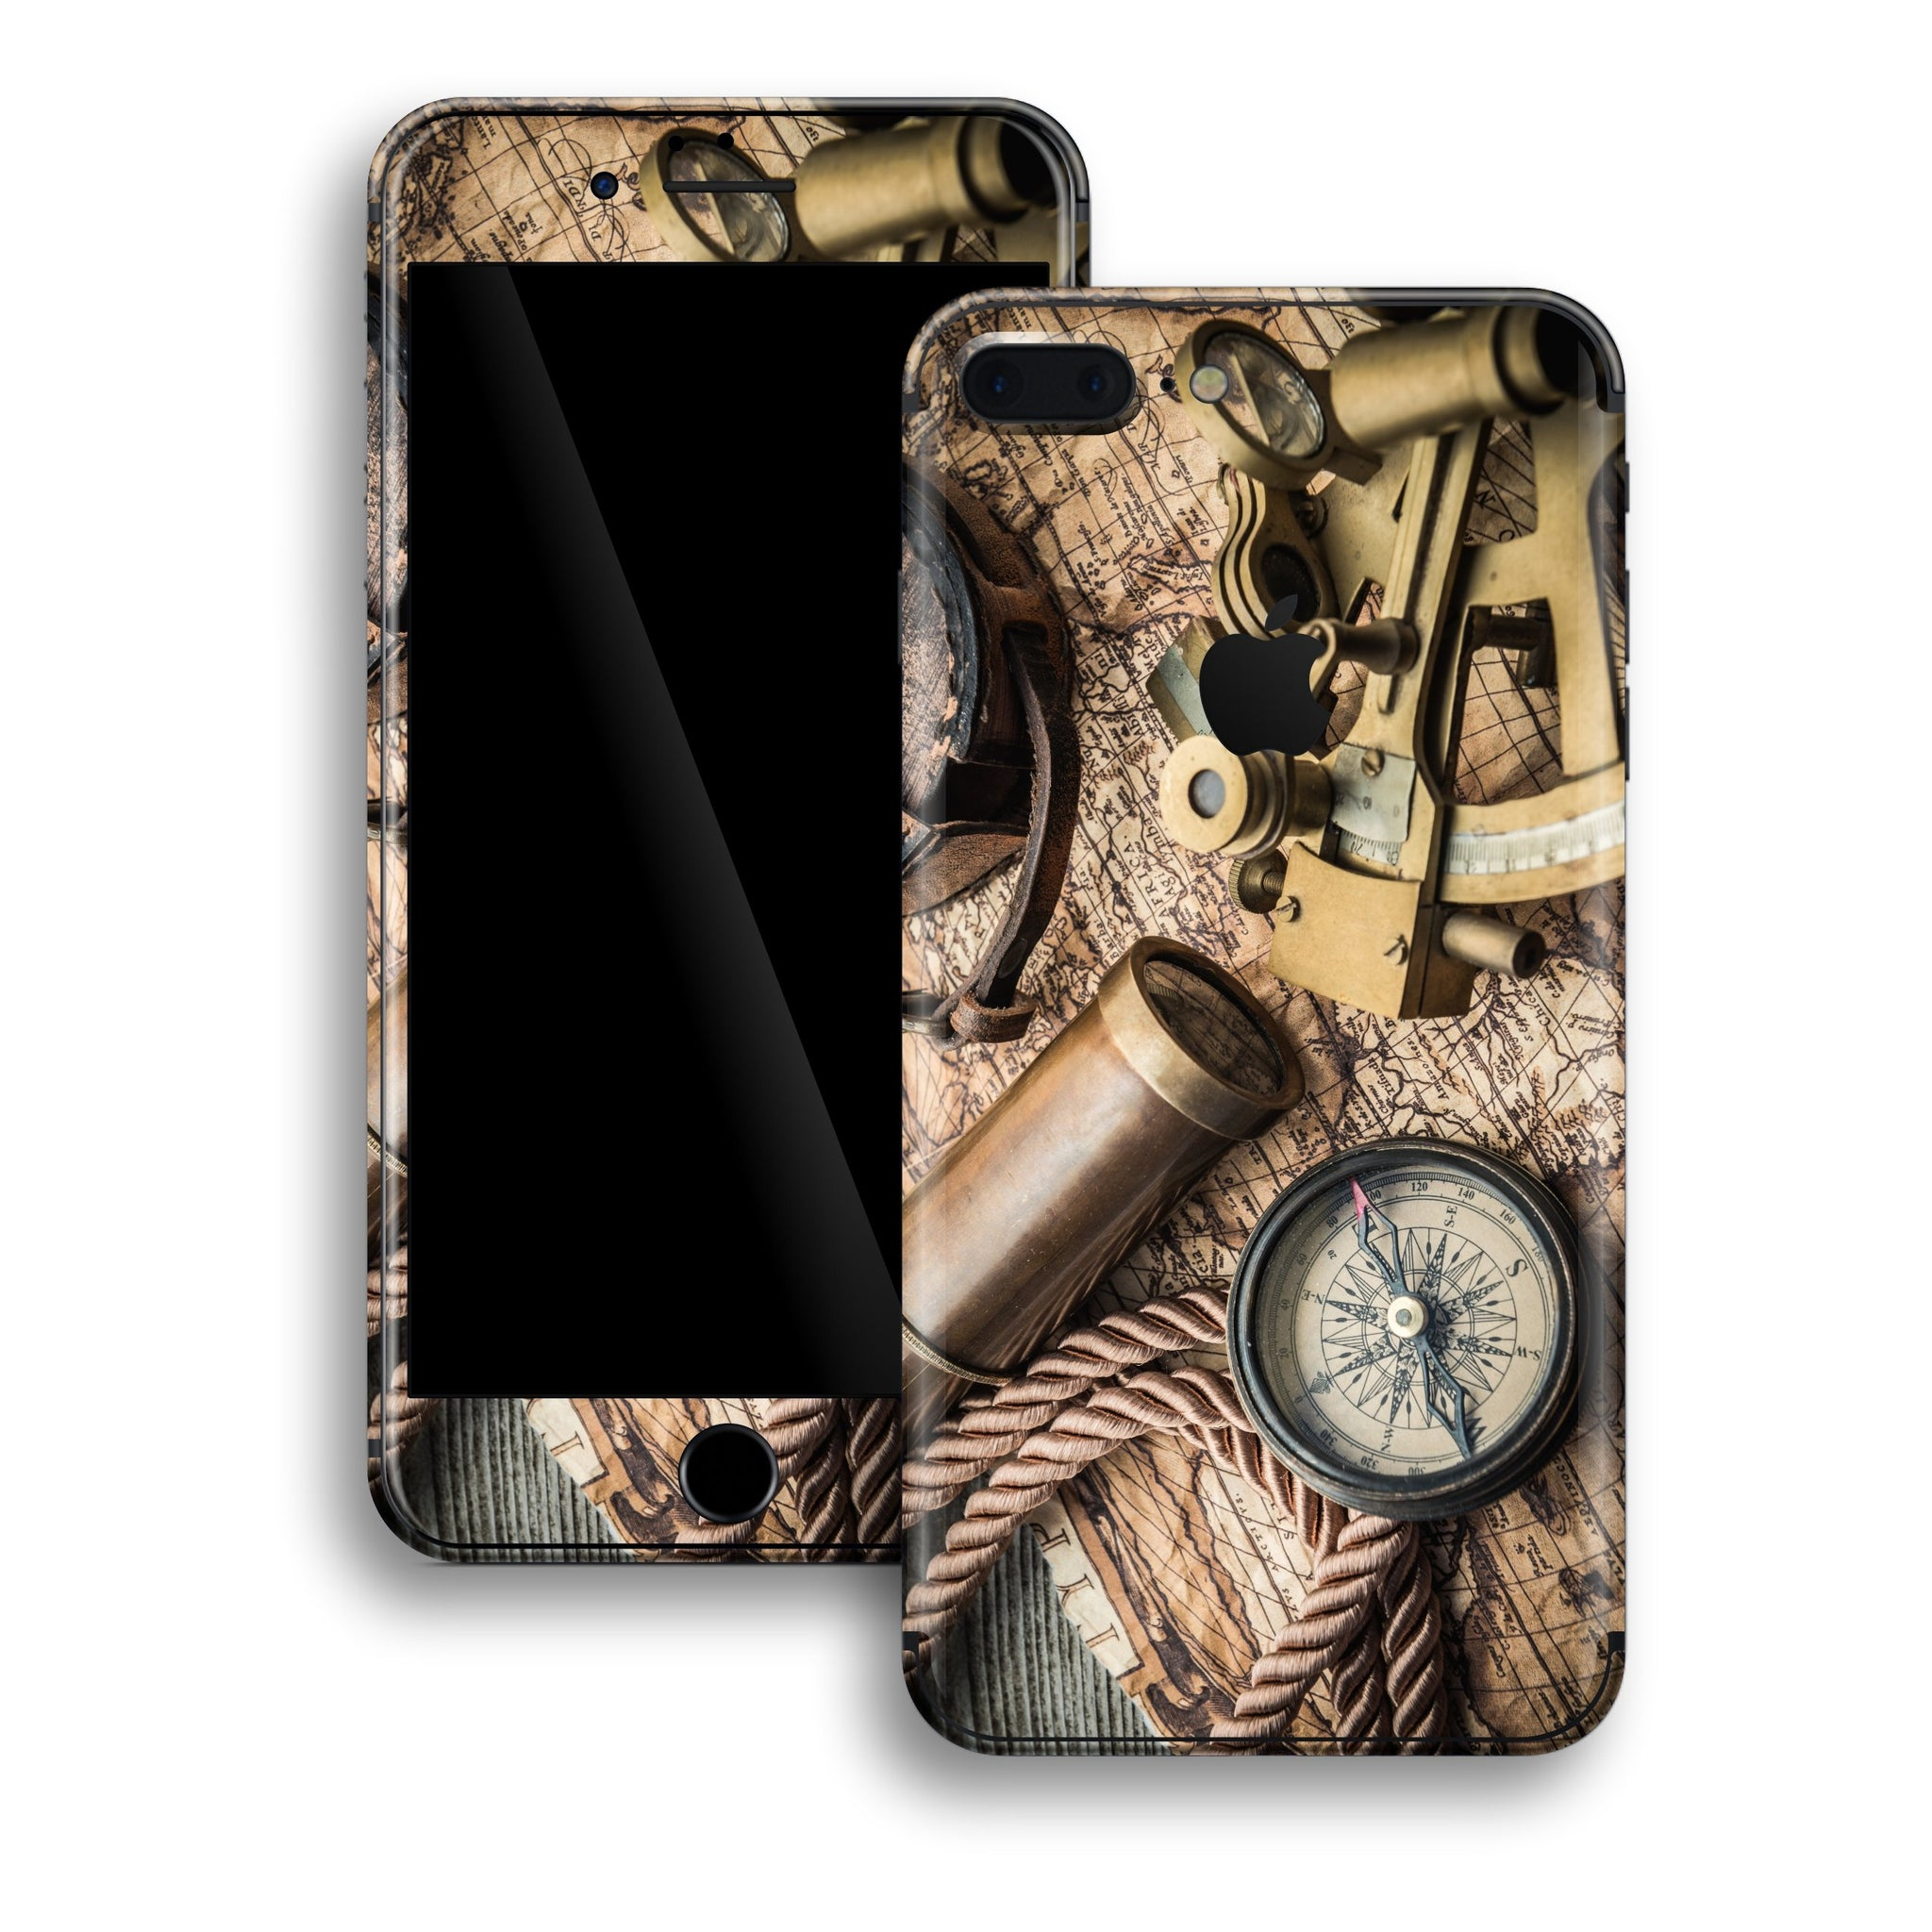 iPhone 8 PLUS Print Custom Signature Traveler Skin Wrap Decal by EasySkinz